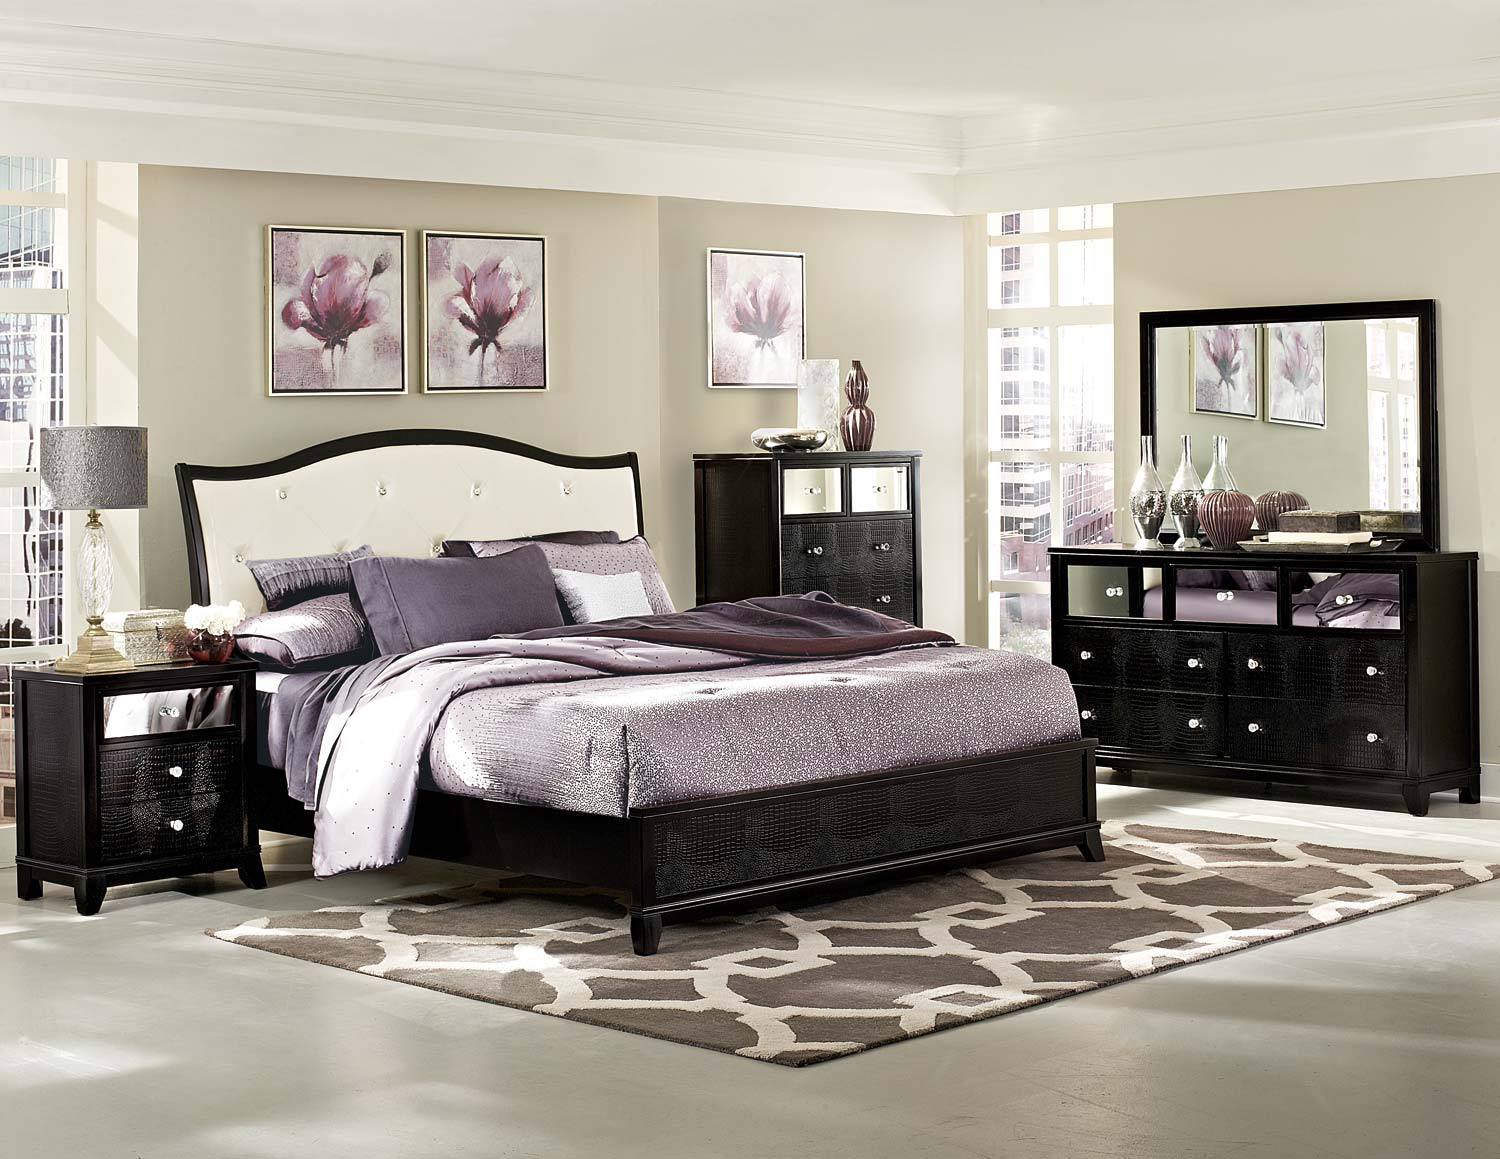 Homelegance Jacqueline Upholstered Bedroom Collection - Faux ...